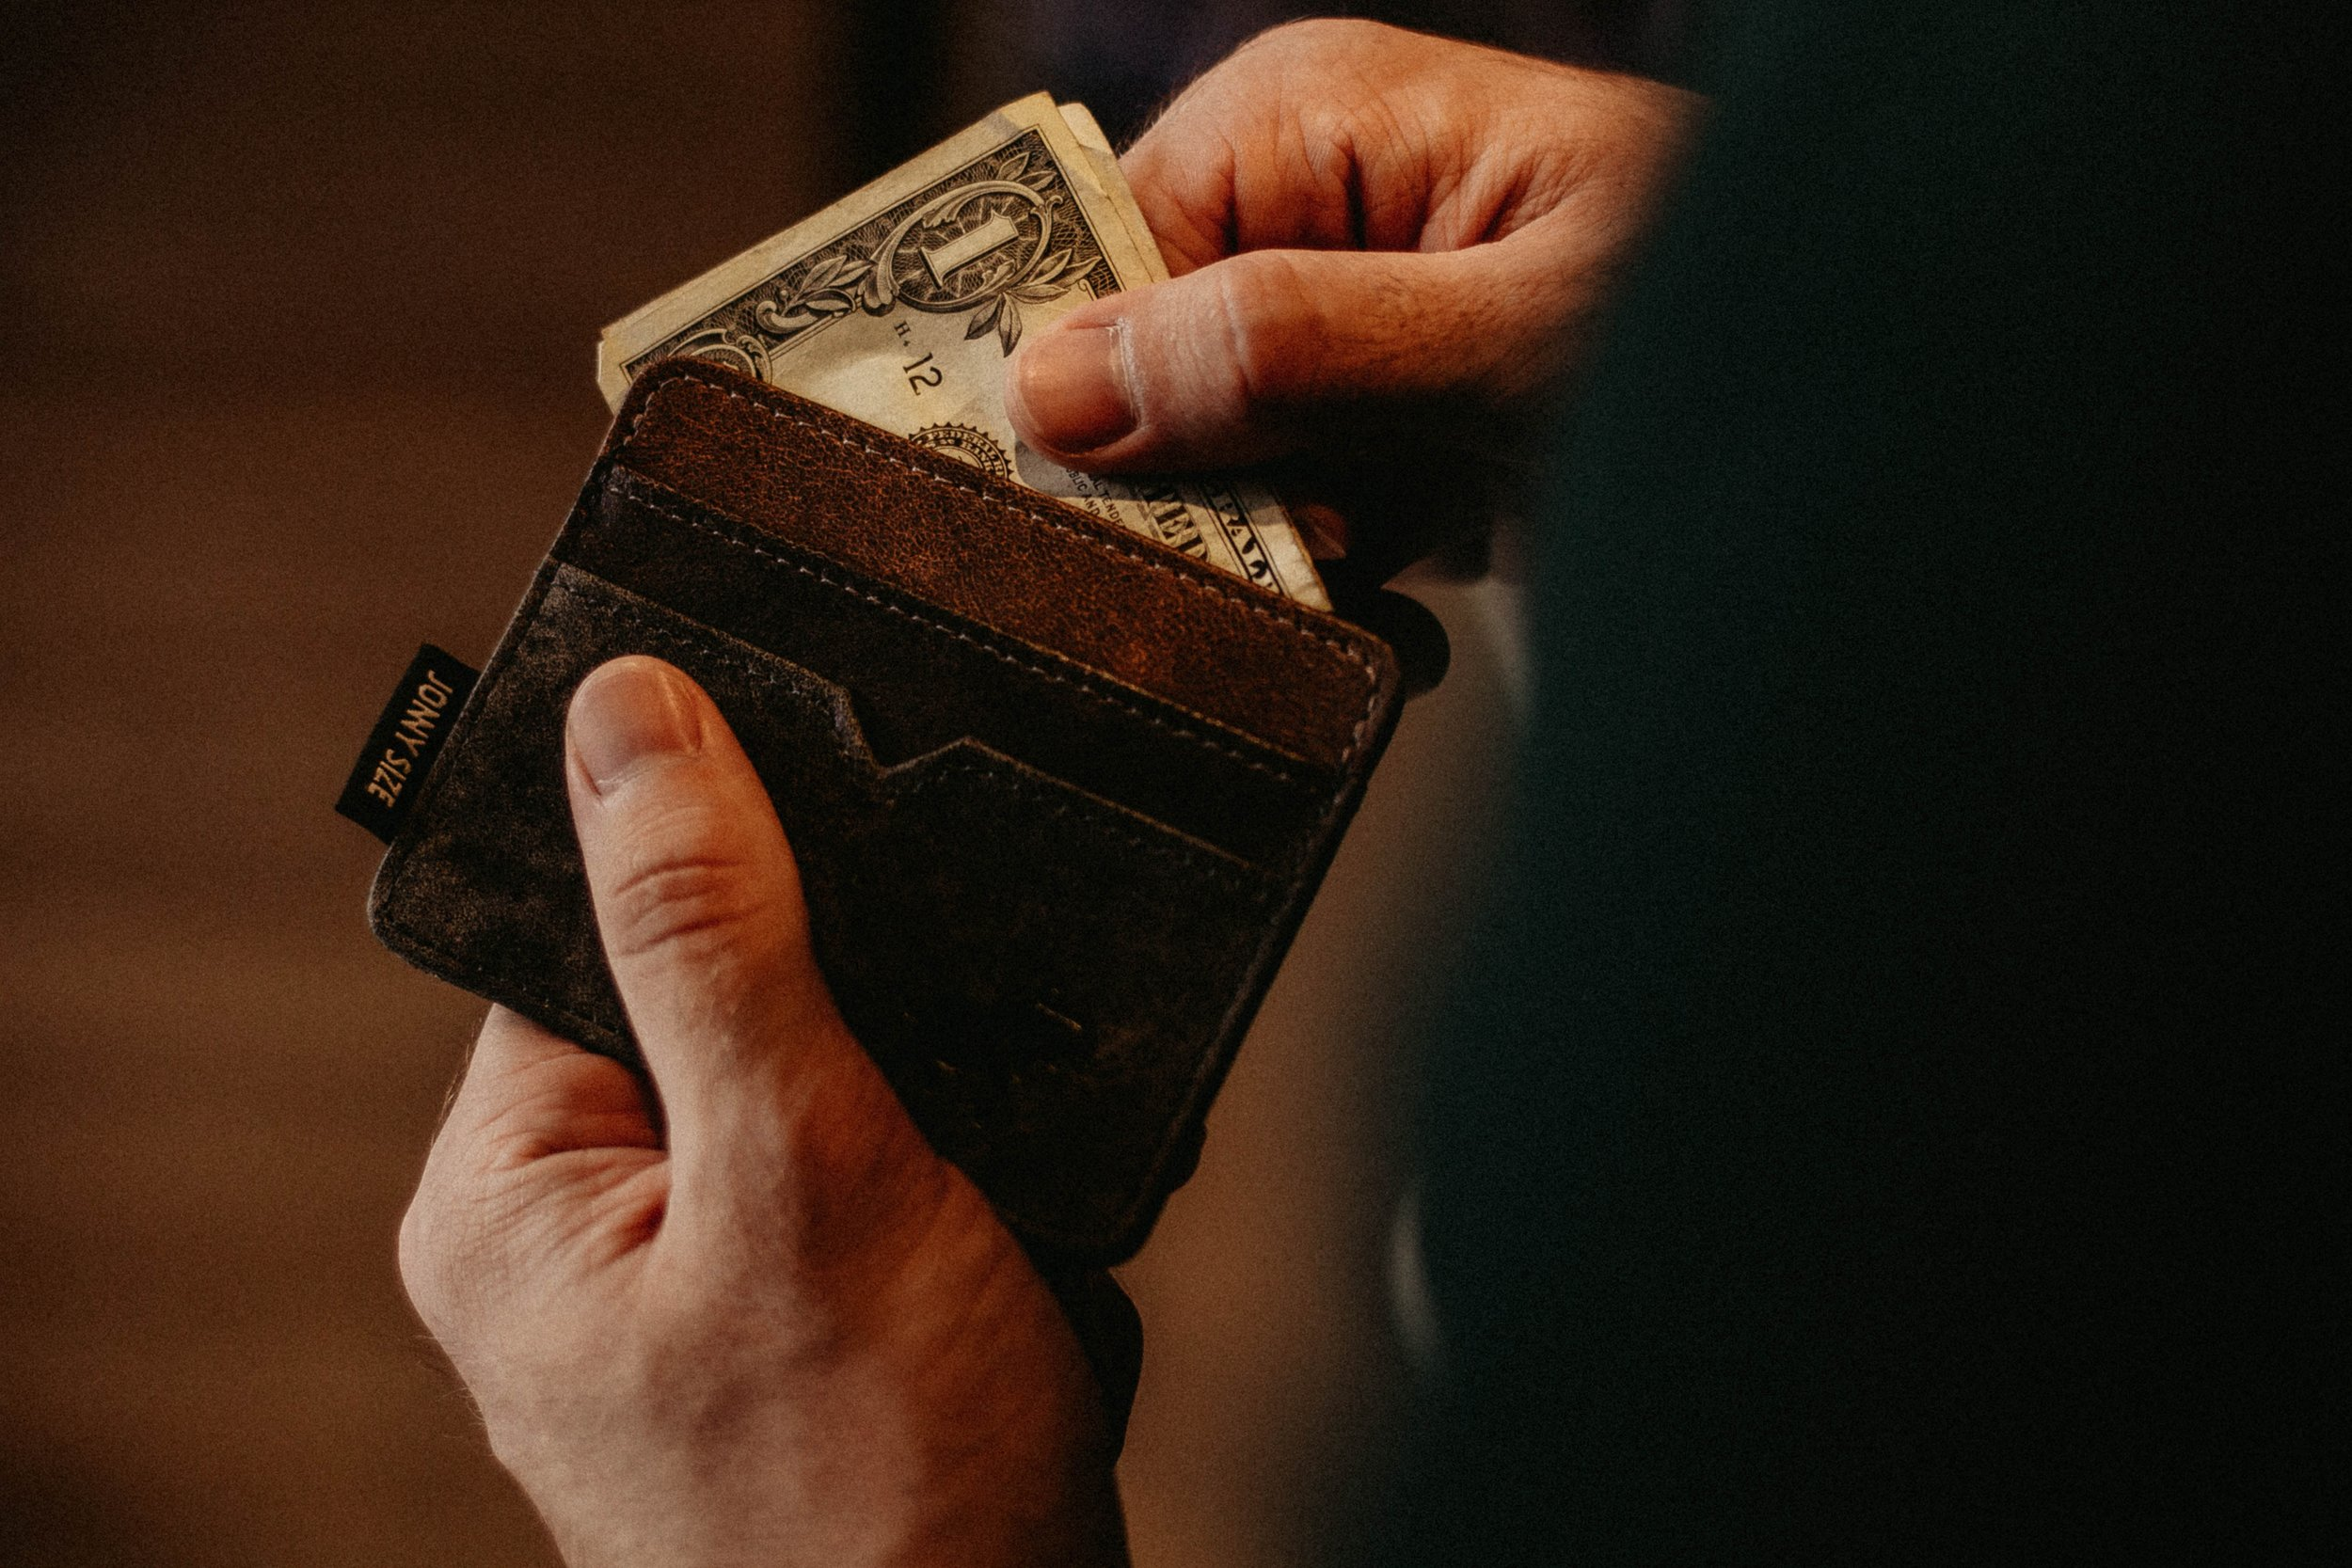 THE SOLUTION TO YOUR MONEY PROBLEMS AND GENE TROUBLES